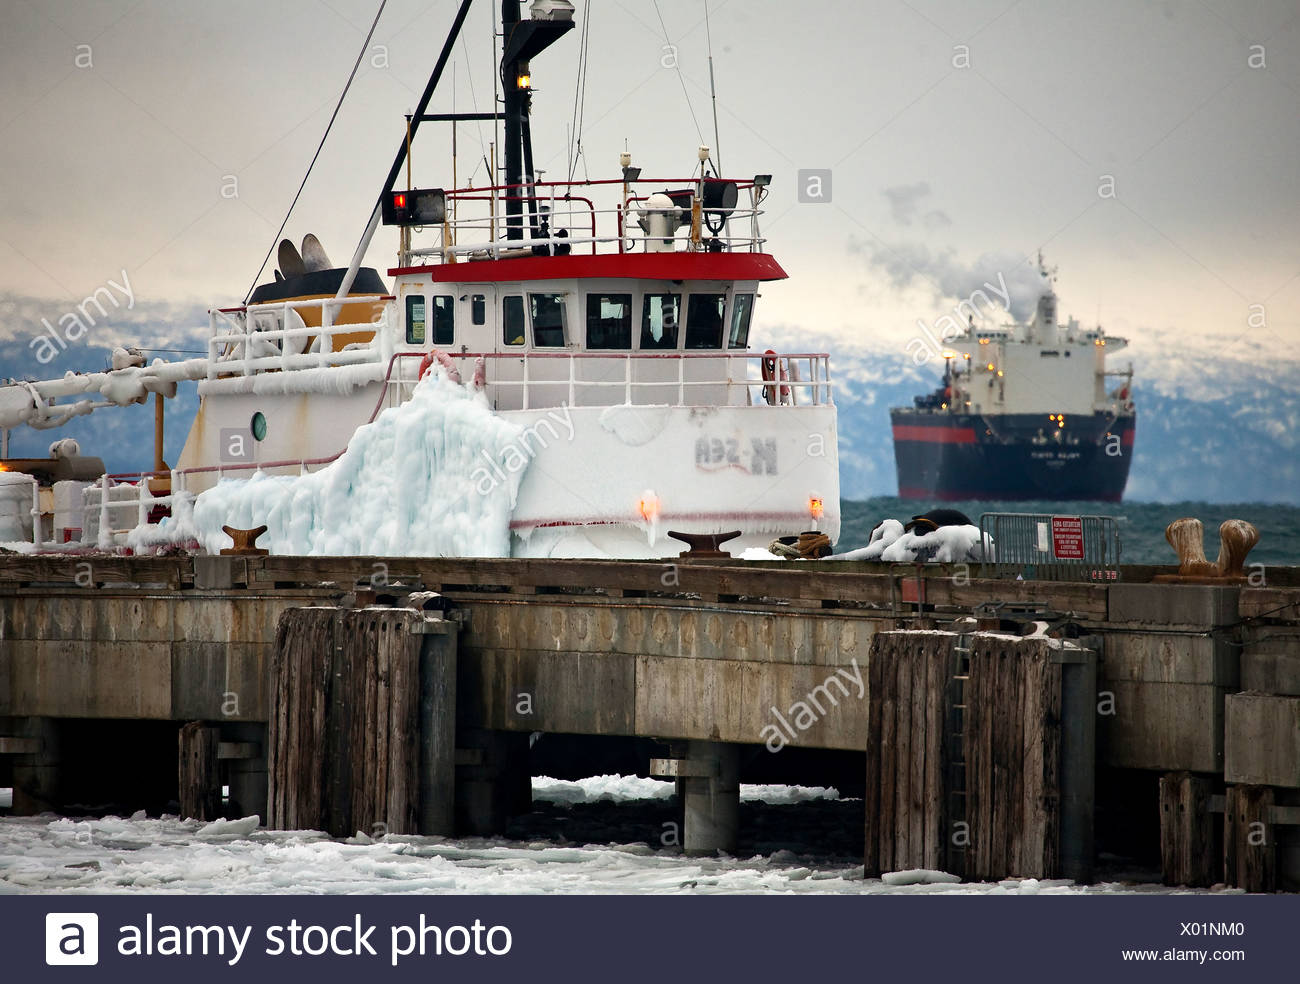 Alaska. Tugs and ships deal with winter ice coming into Homer. - Stock Image